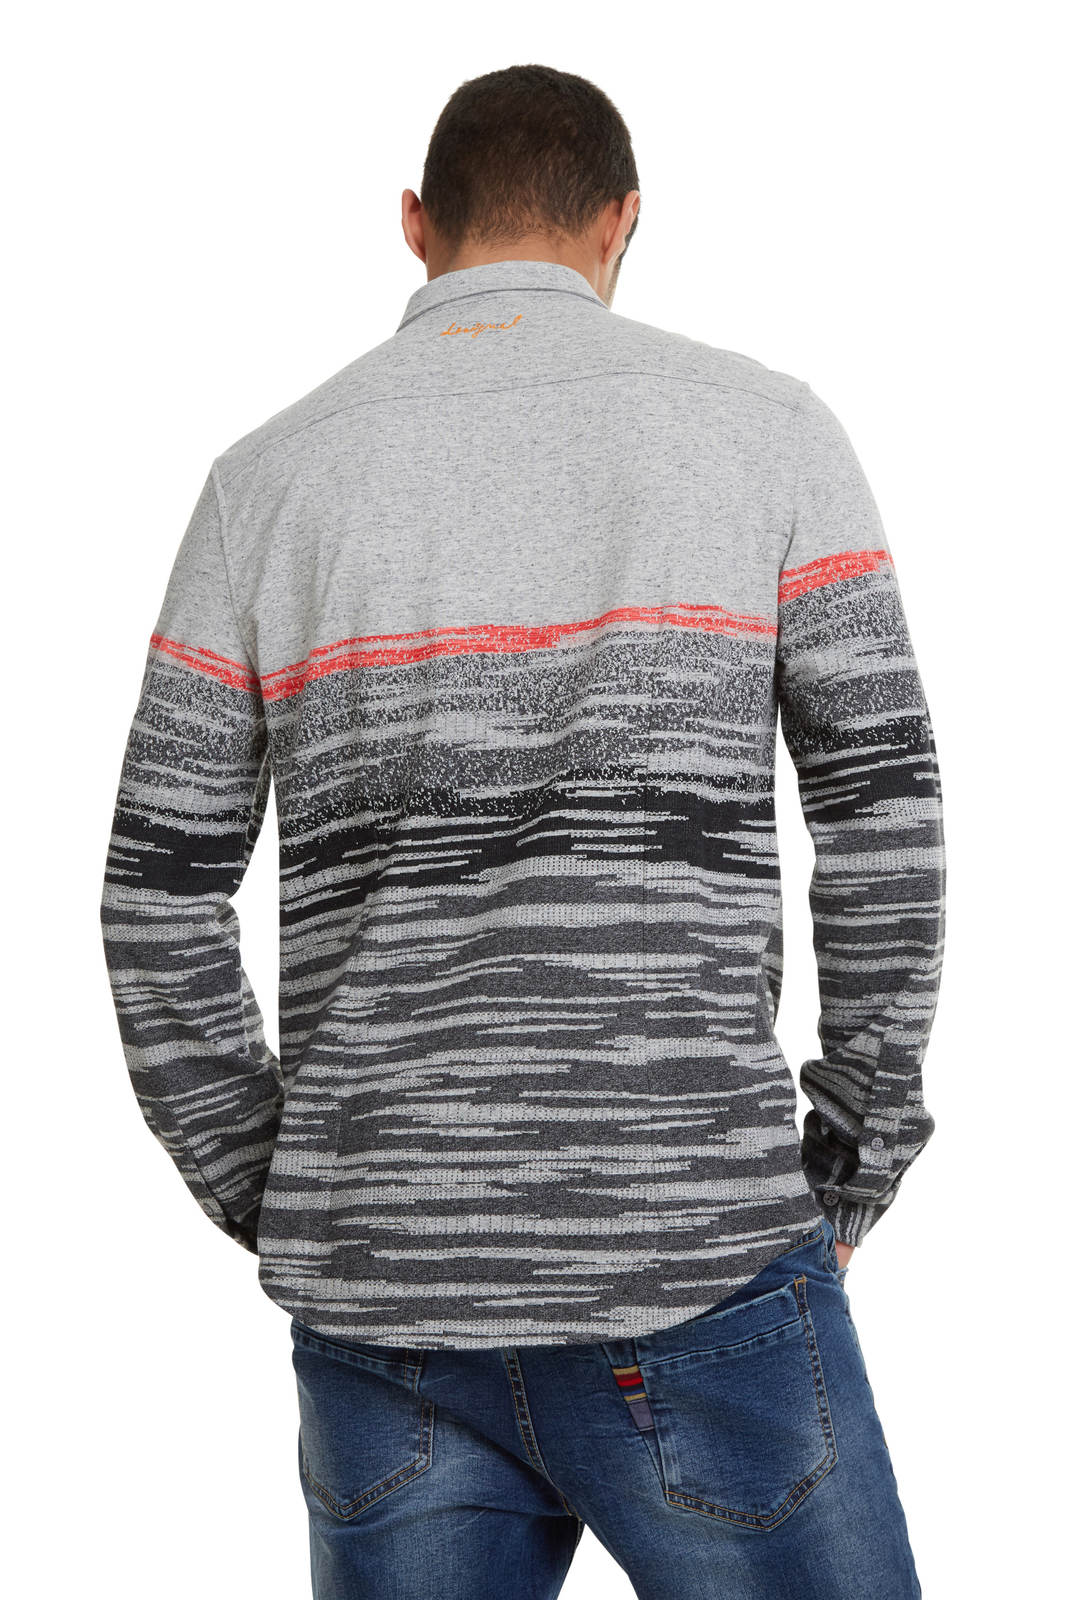 Desigual Grey Warm Knitwear Shirt Camilo